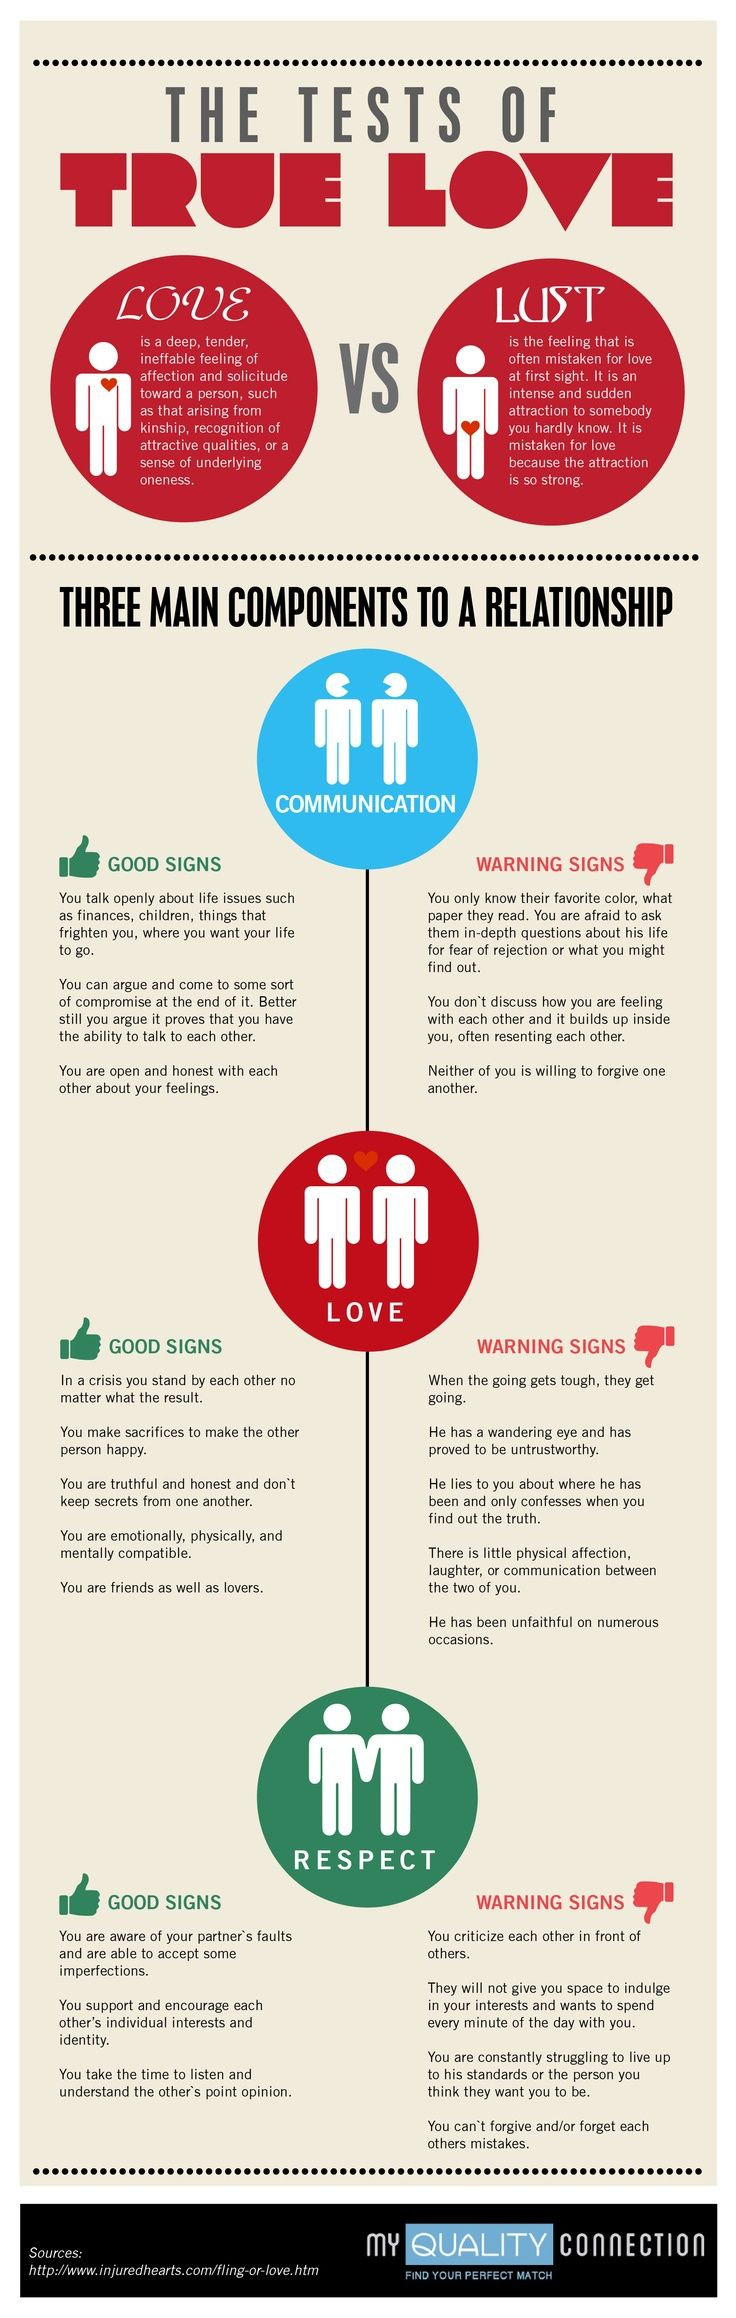 relationship components infographic